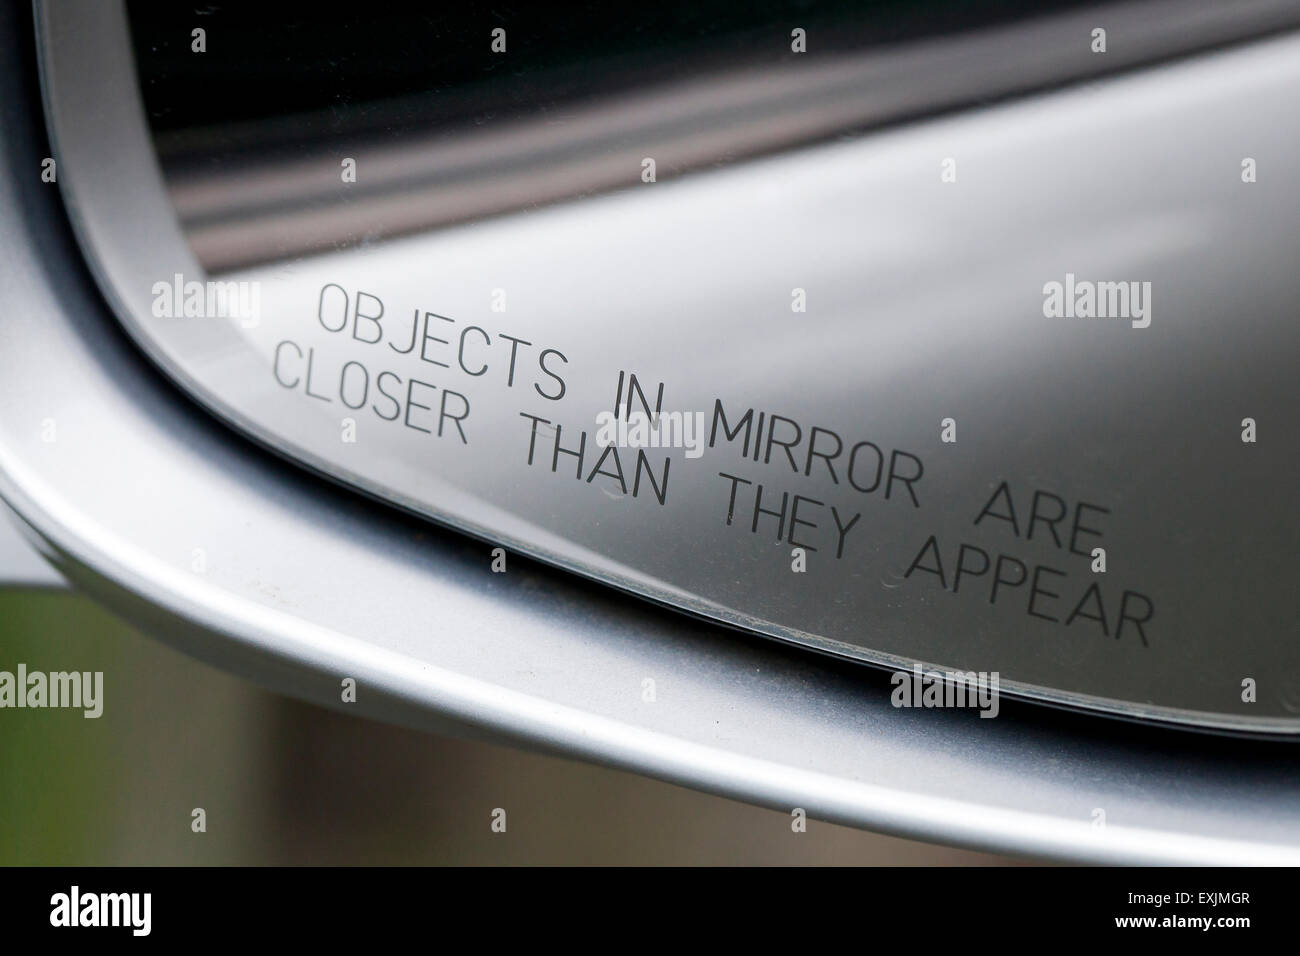 Objects in mirror are closer than they appear message in passenger side mirror of car - USA - Stock Image